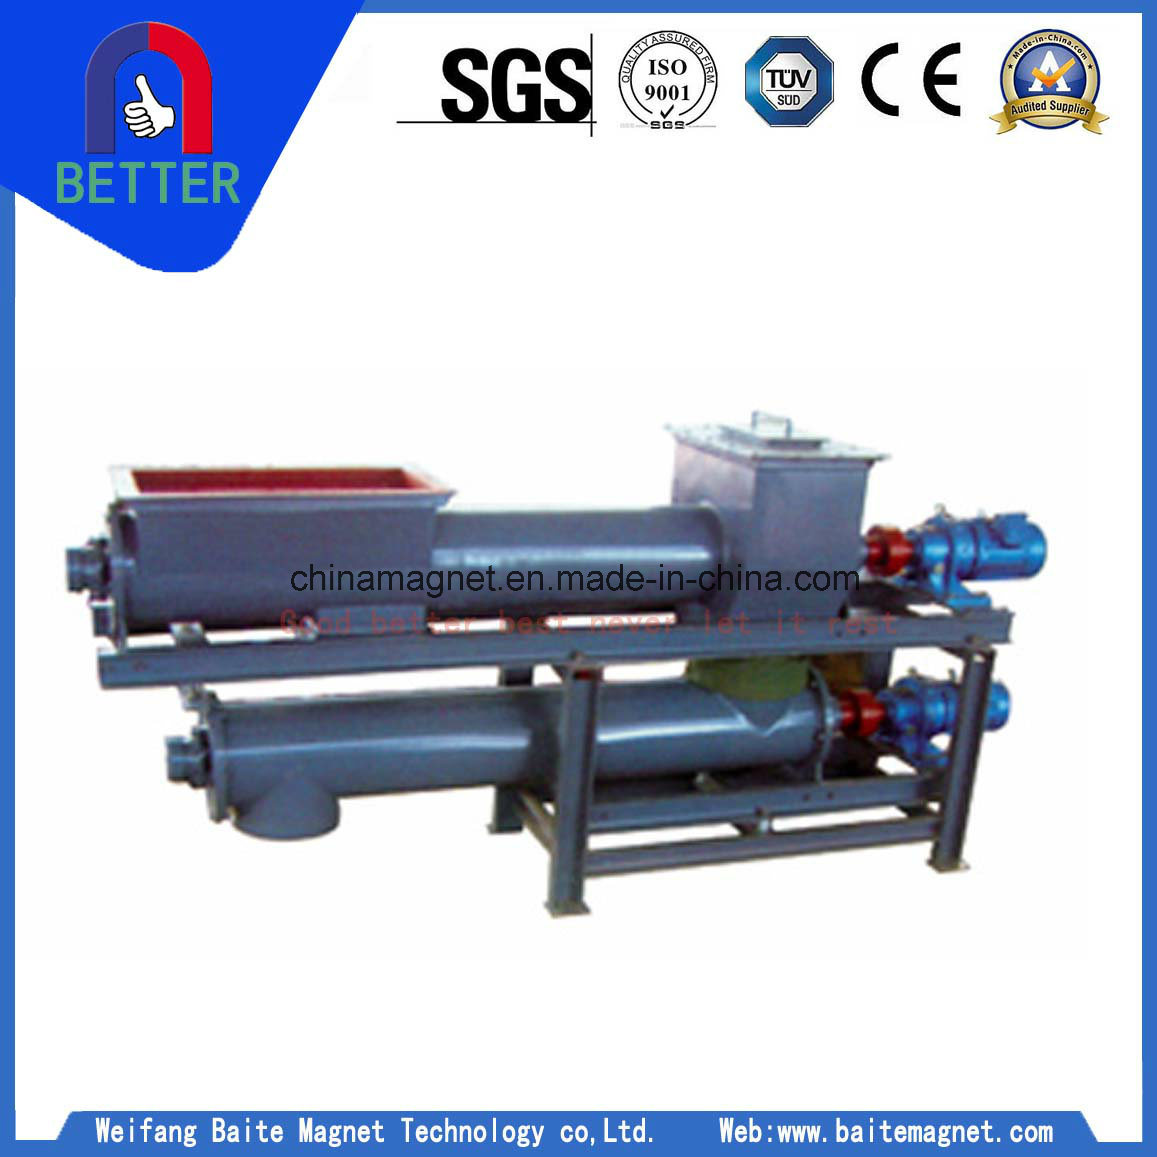 Tgg Powder Steady Flow Quantitative Screw Scale for Powder Handling